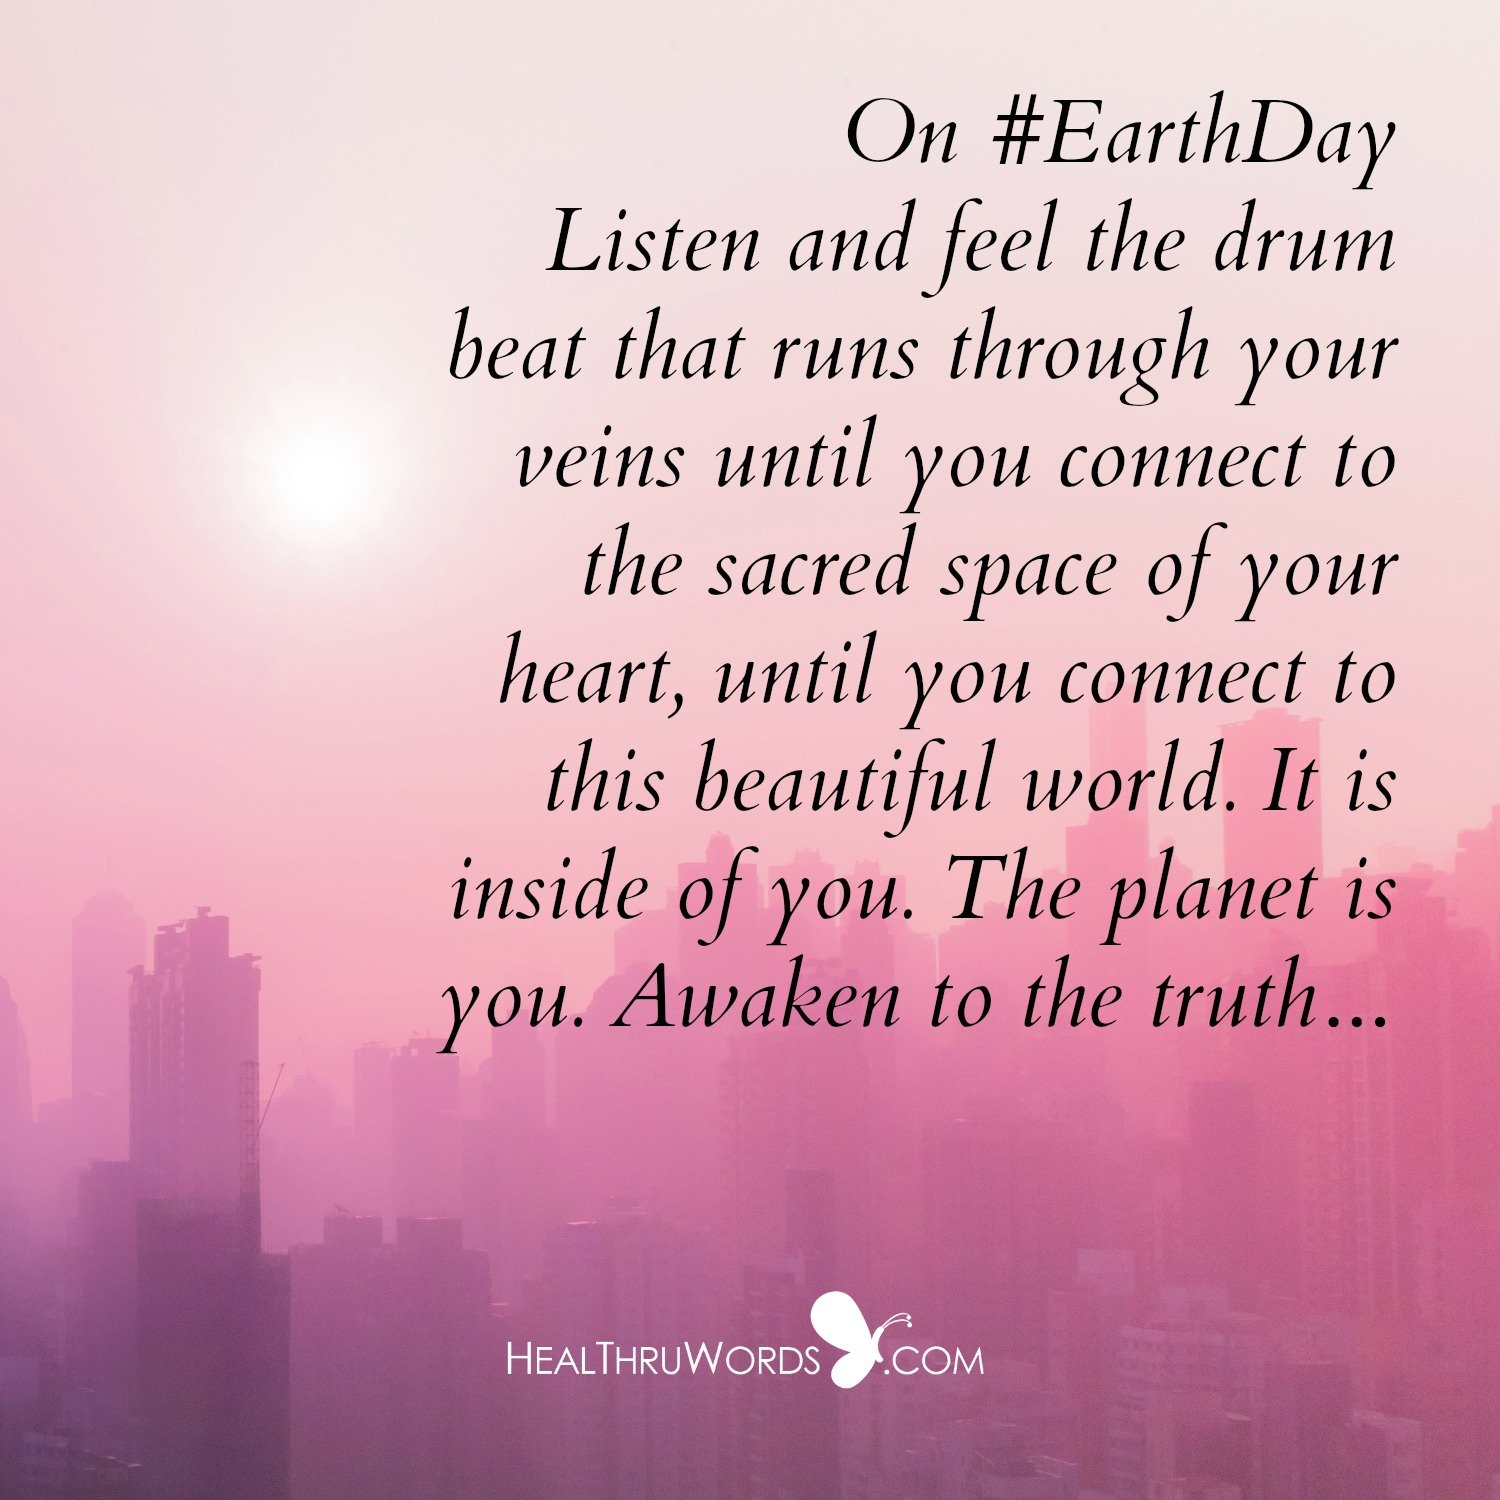 Inspirational Image: This Earth Day